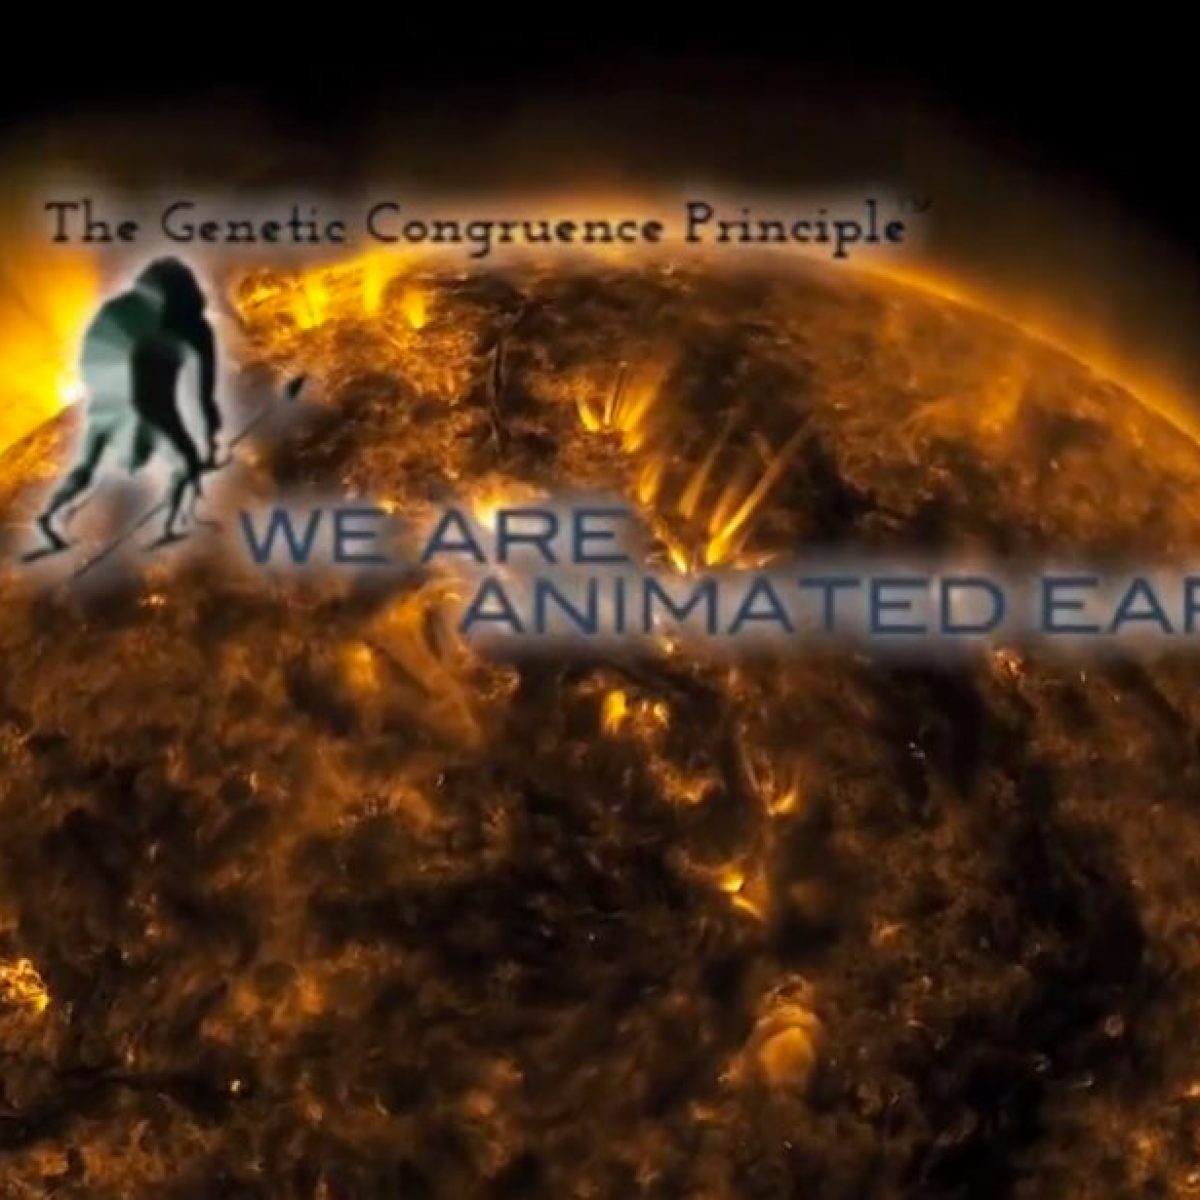 We are Animated Earth Epic Video